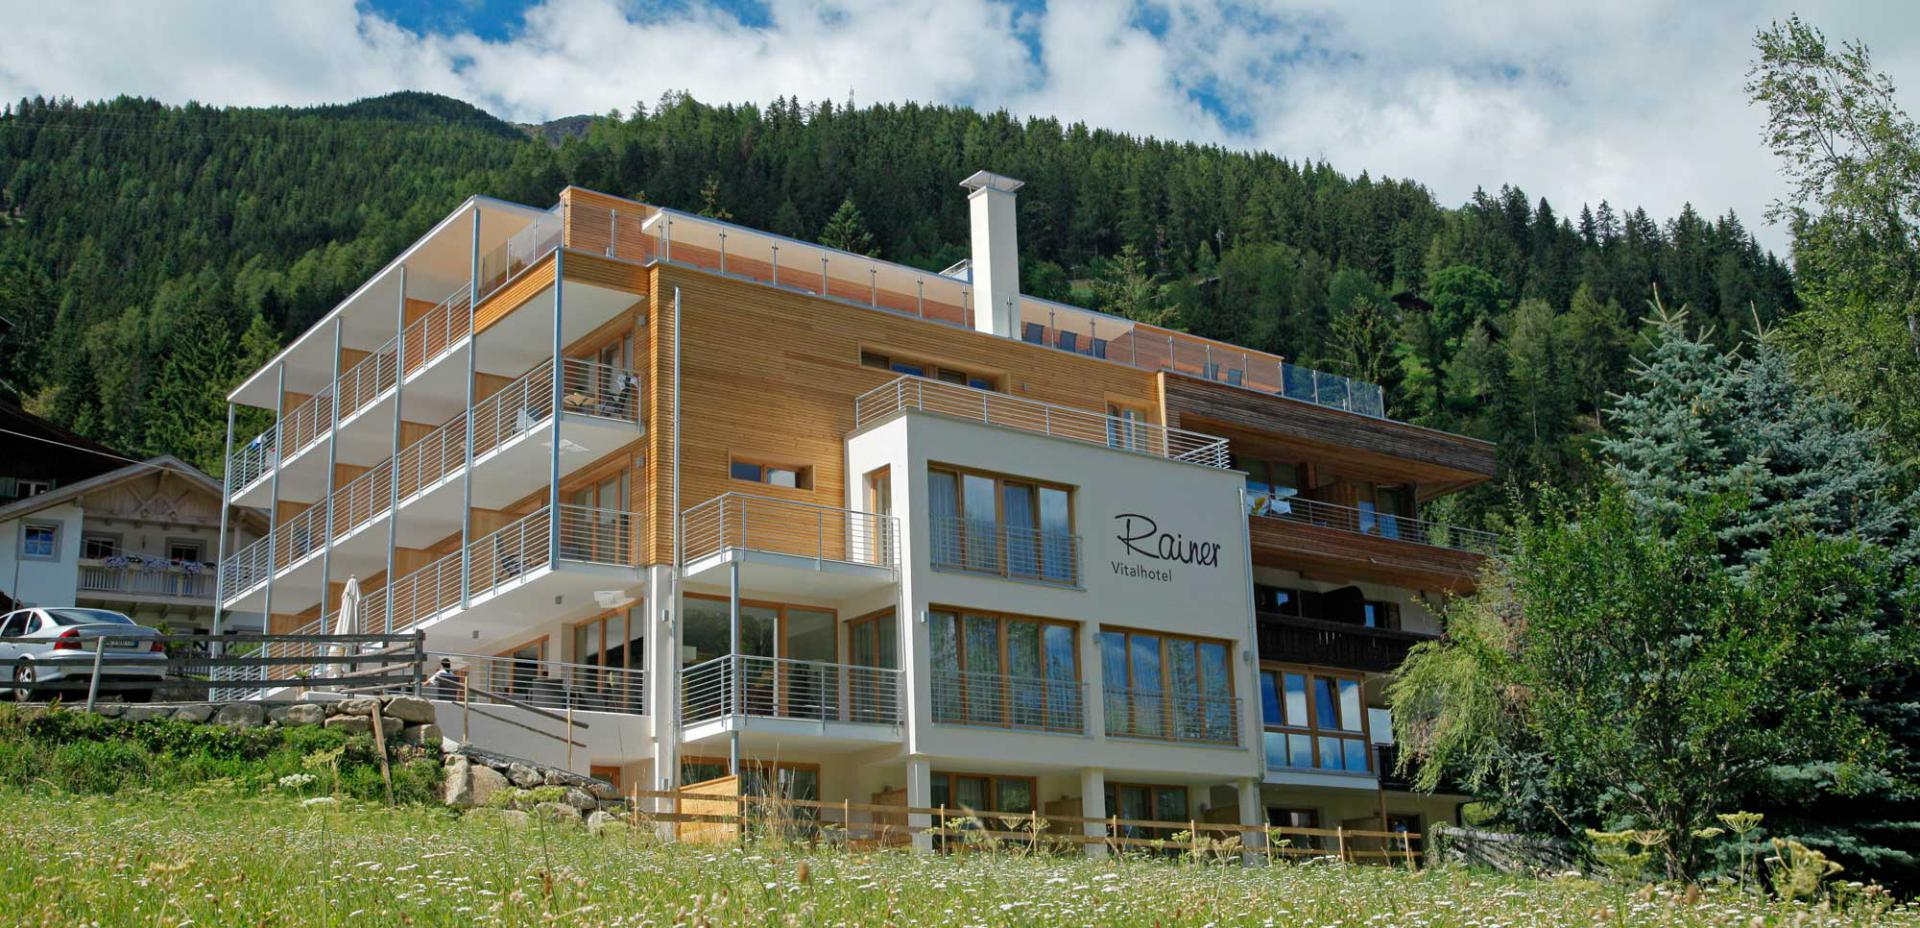 Vital-Hotel Rainer in St. Walburg im Ultental